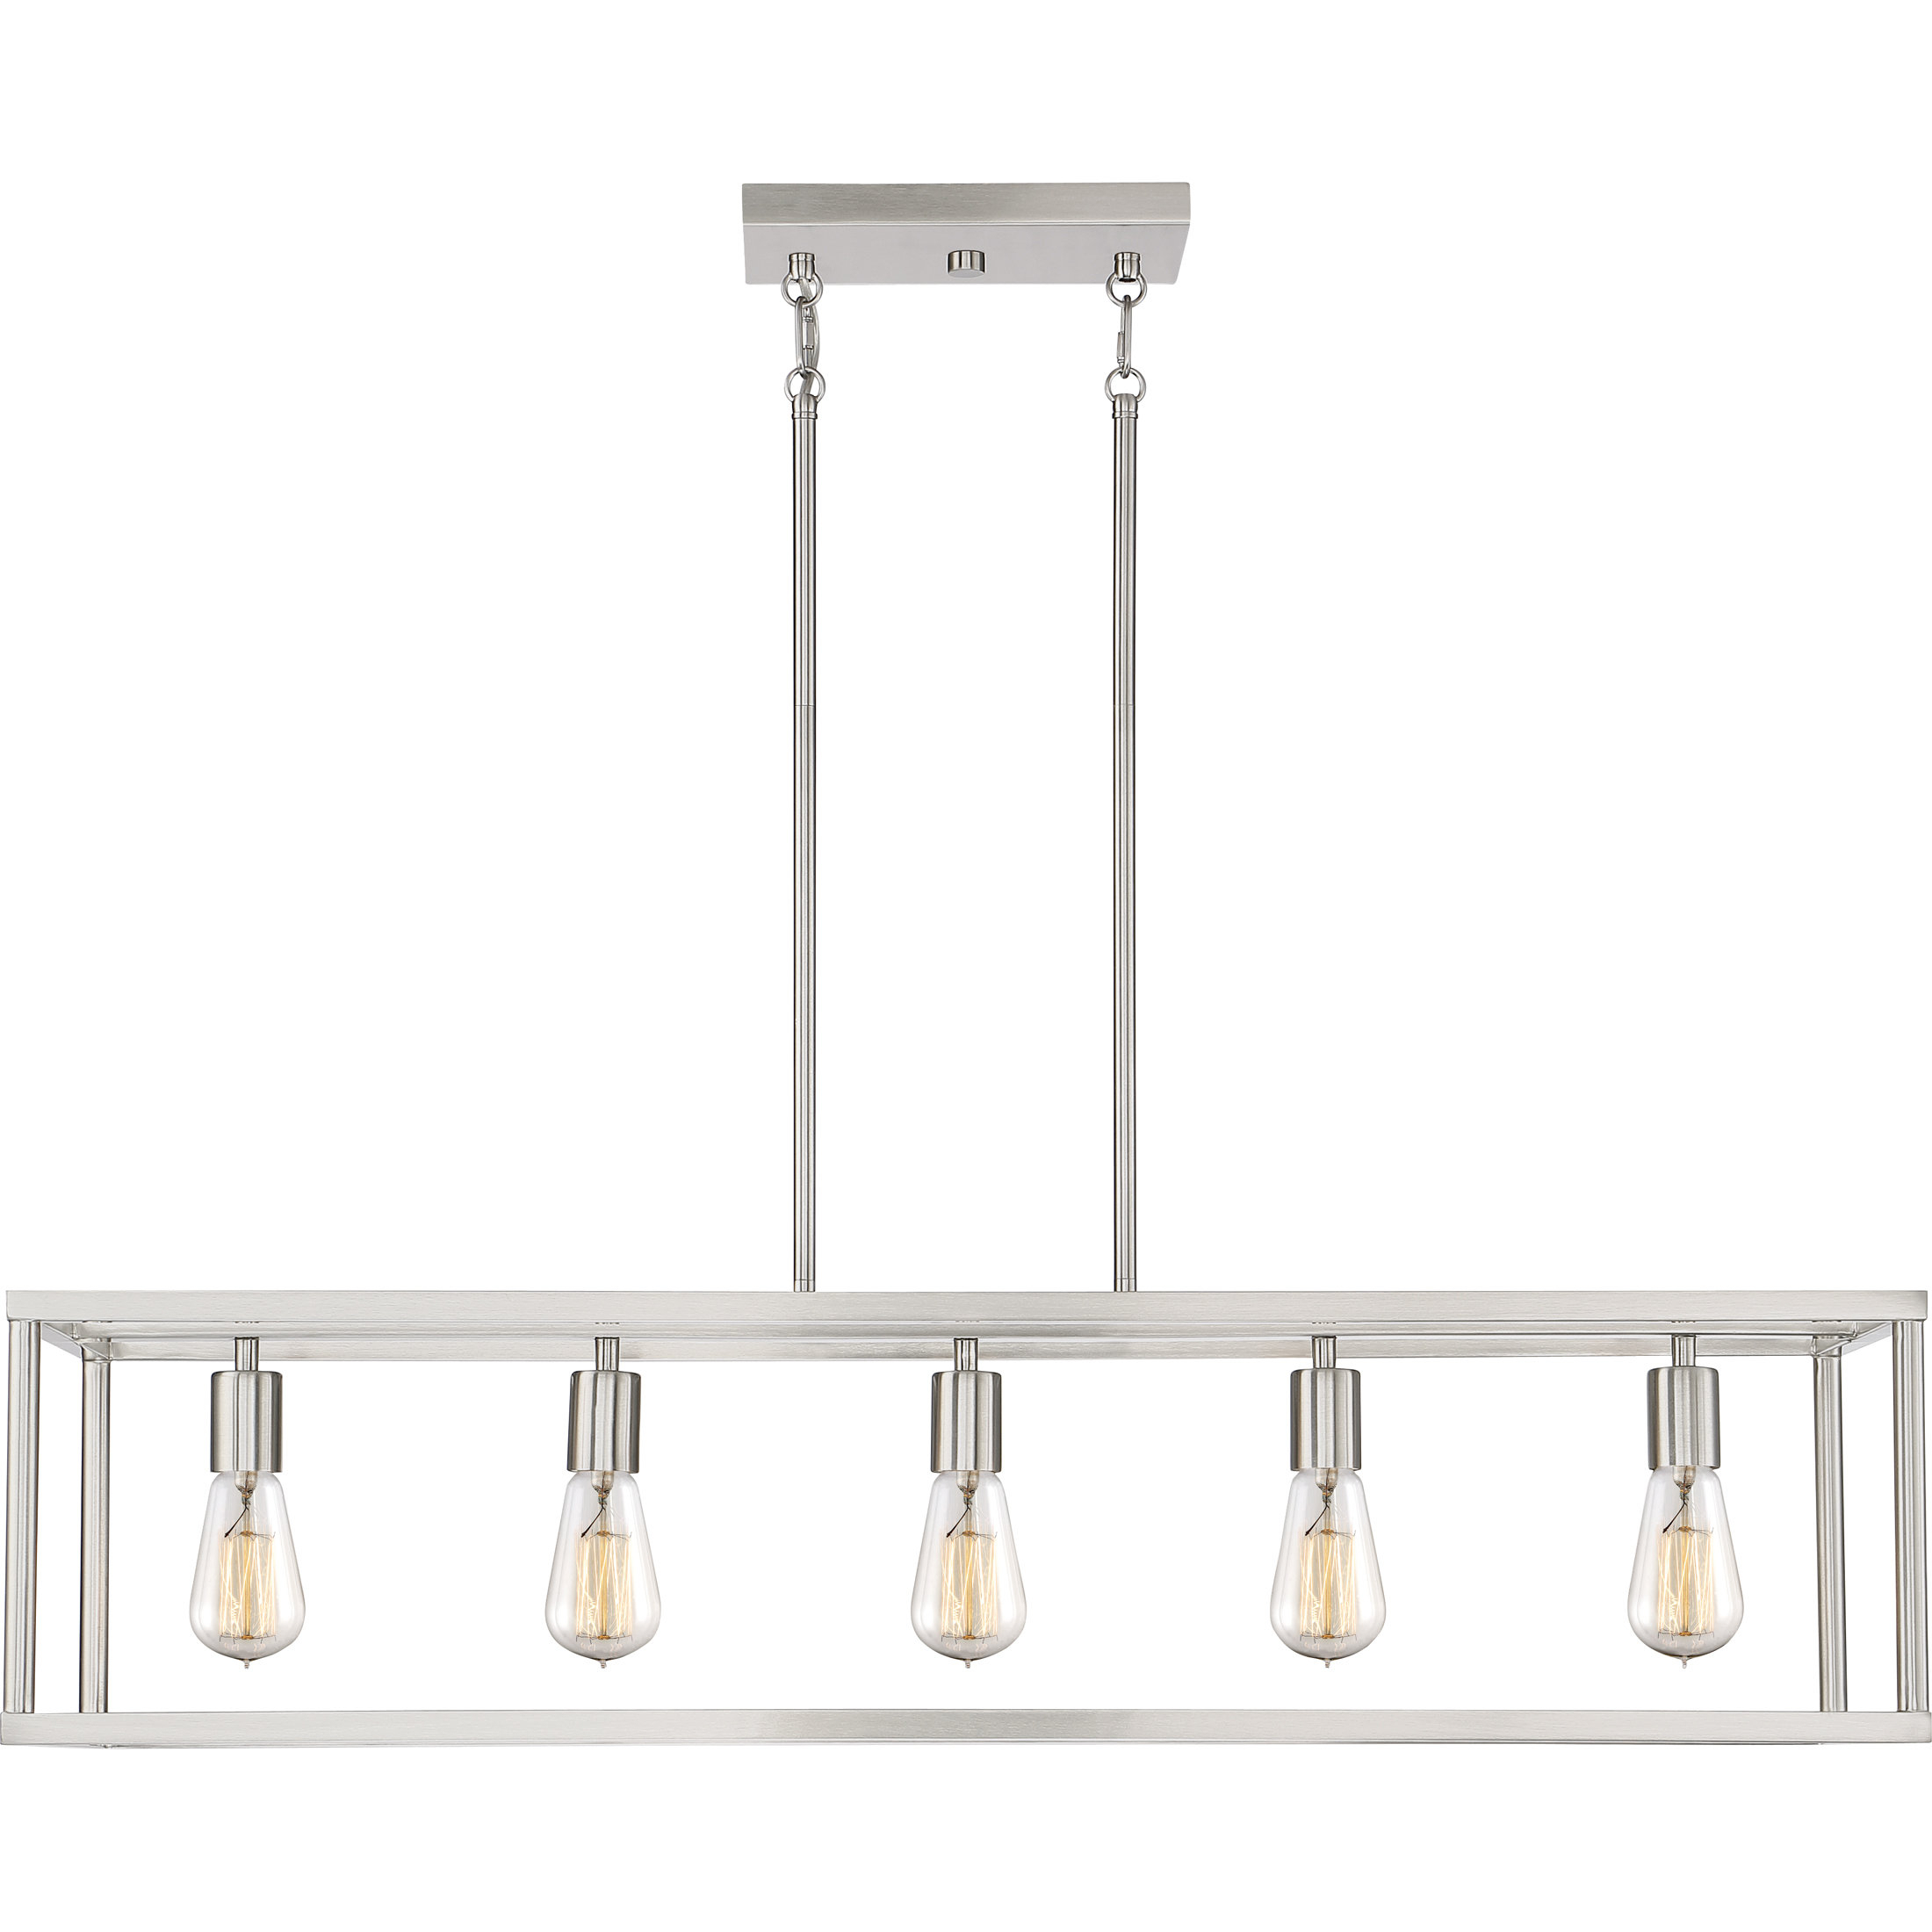 Recent Brayden Studio Sargeant 5 Light Kitchen Island Linear Pendant Pertaining To Neal 5 Light Kitchen Island Teardrop Pendants (View 18 of 20)